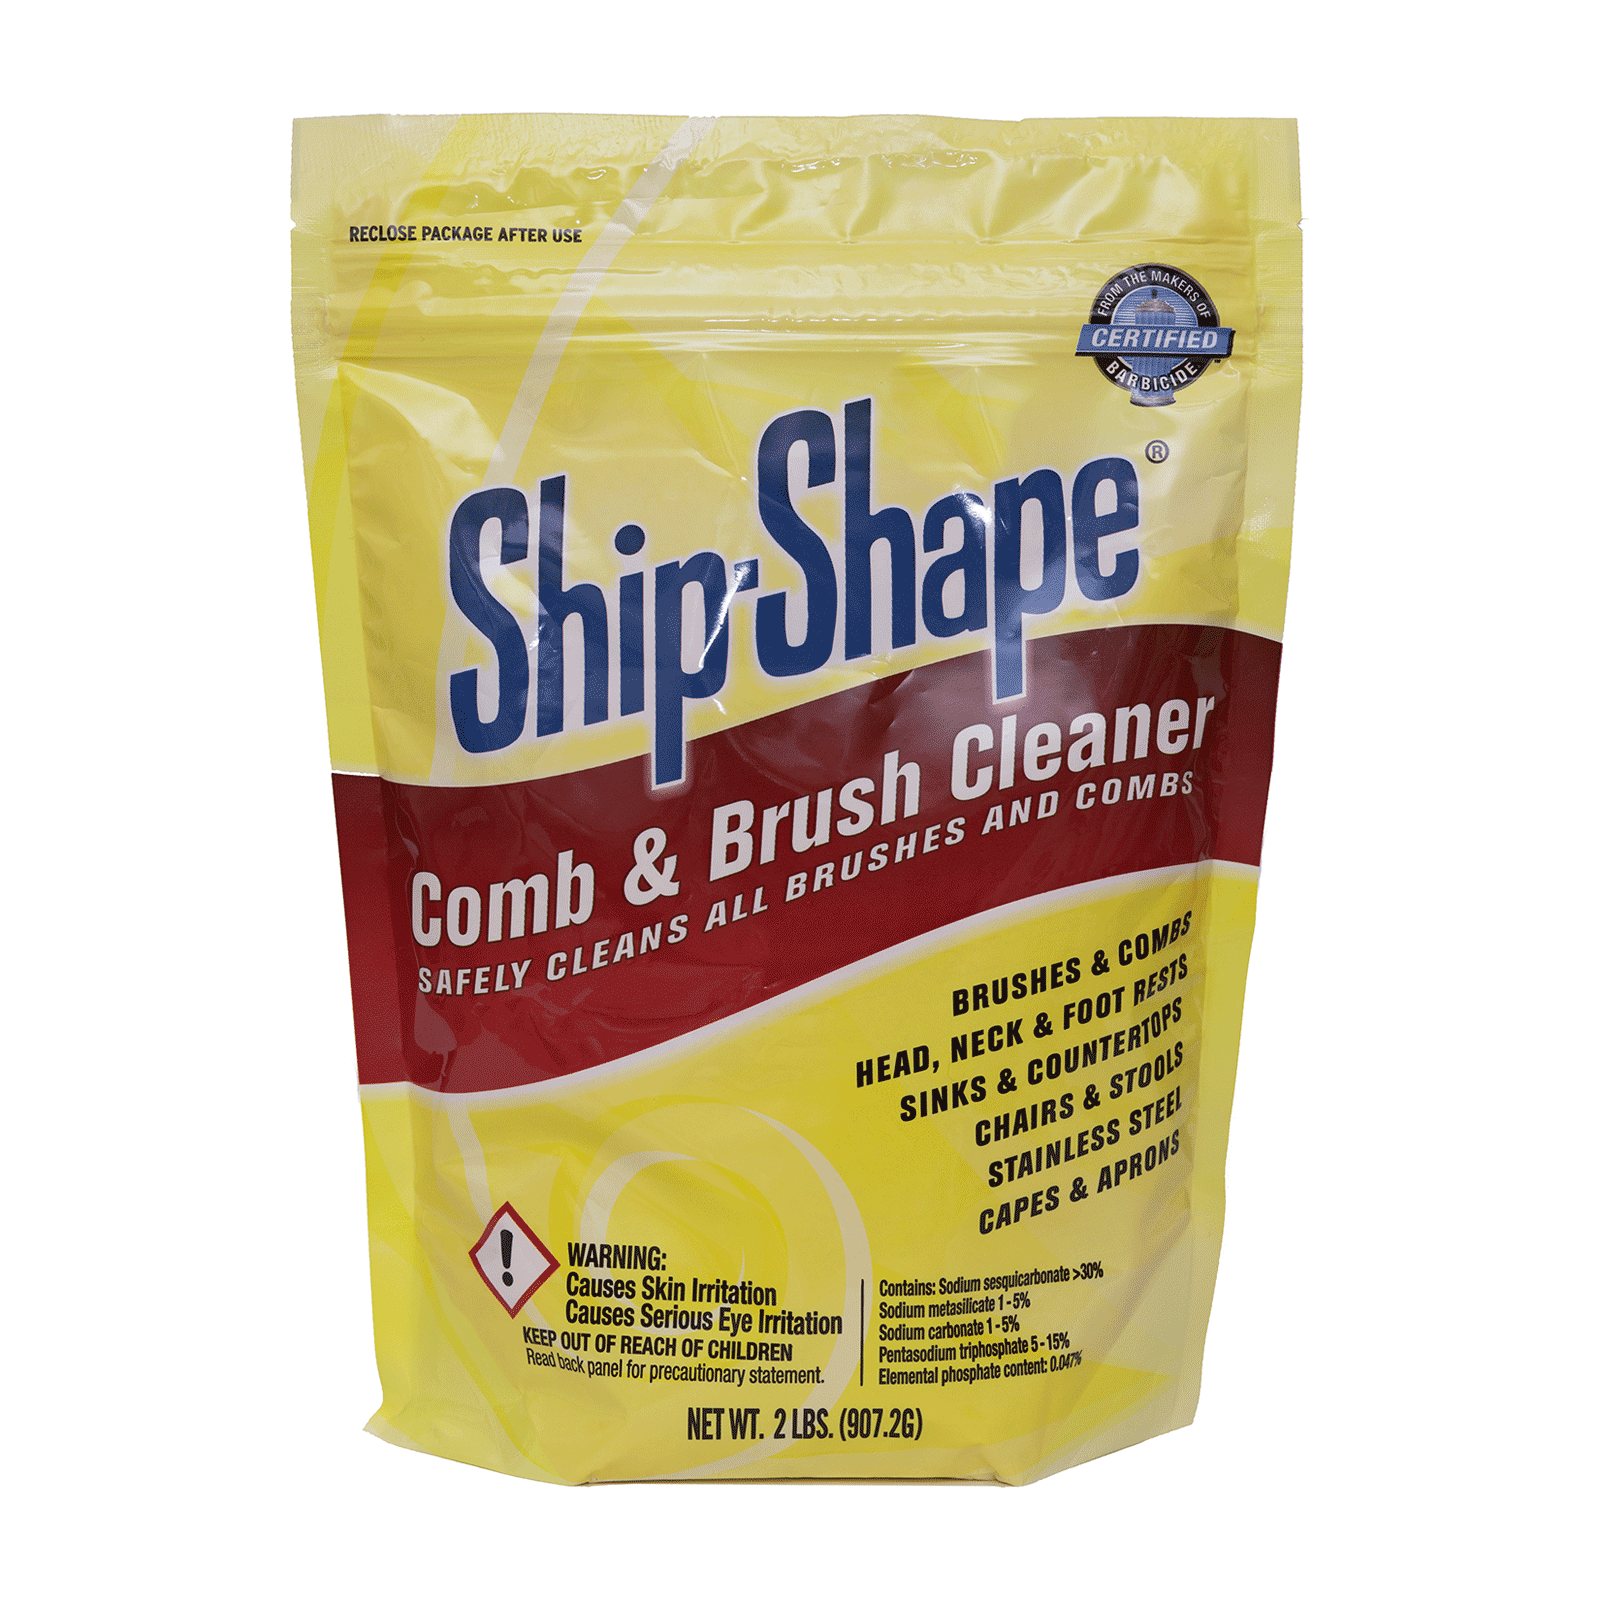 Ship-Shape Comb & Brush Cleaner - King Research Barbicide